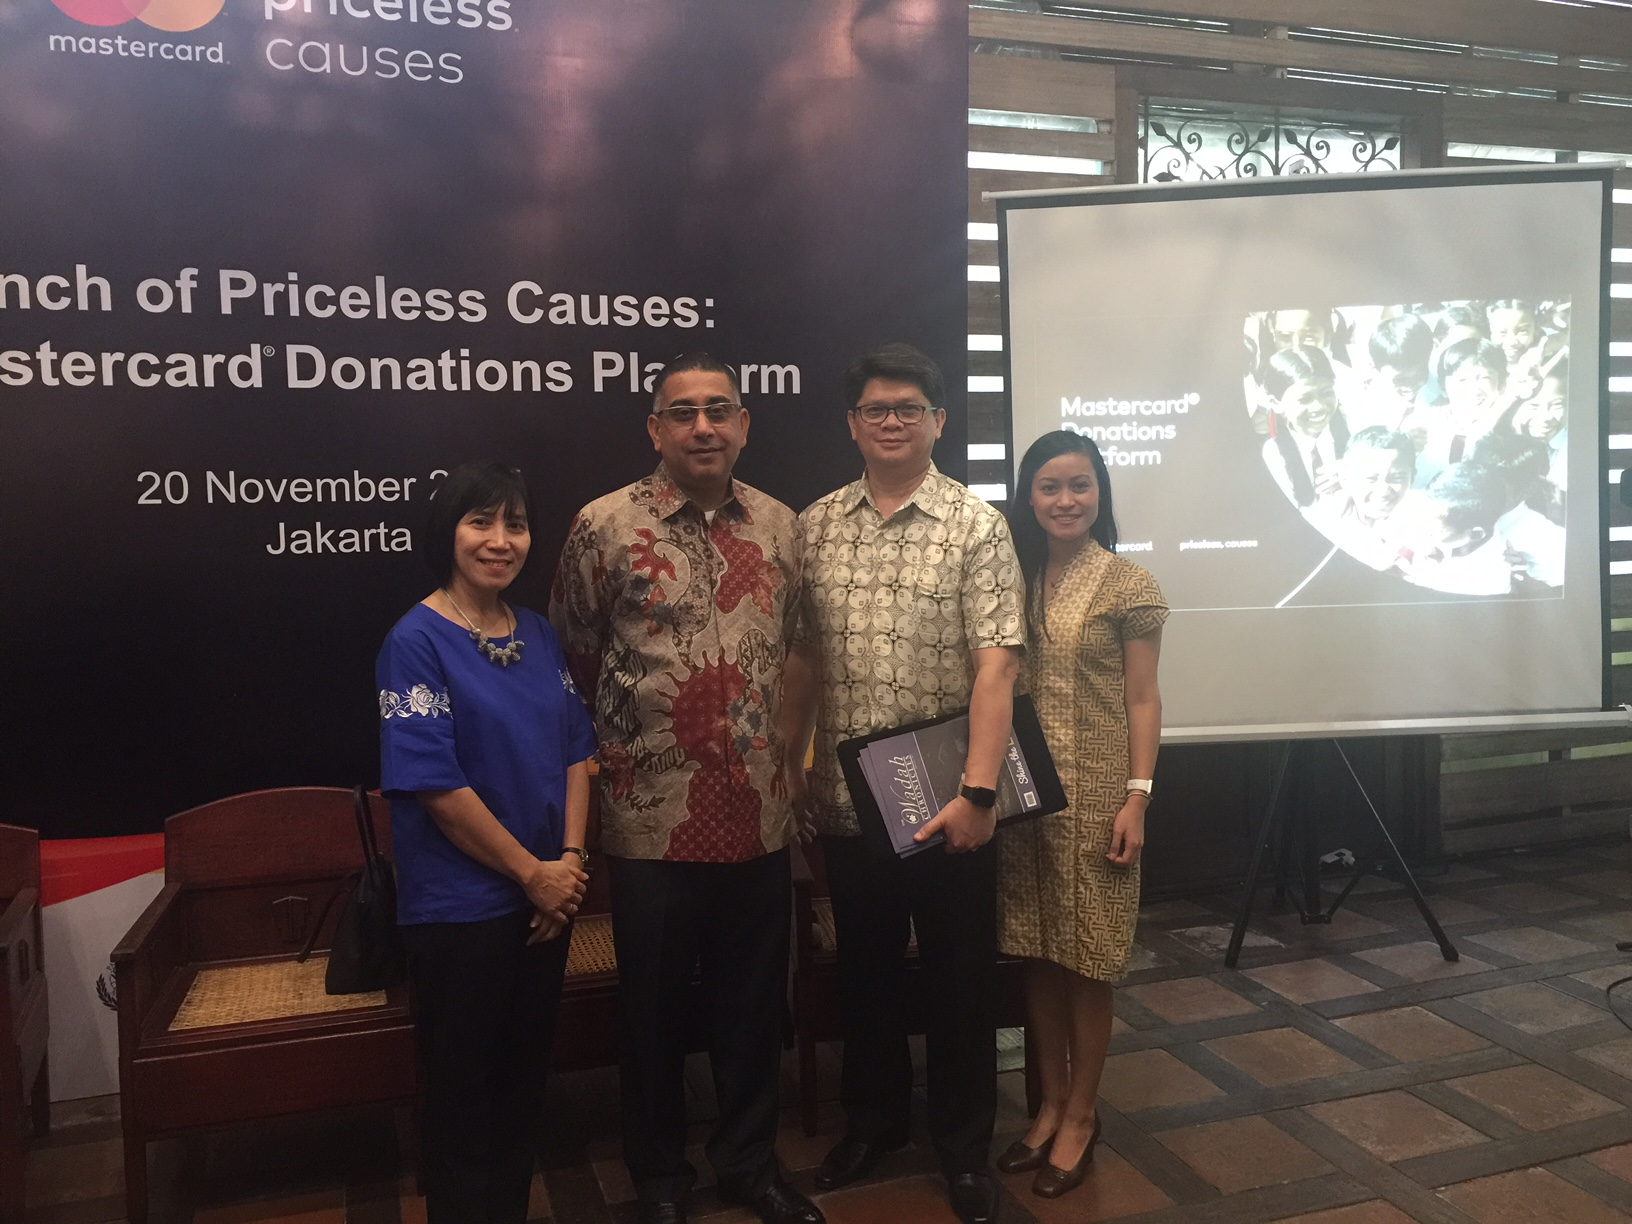 Mastercard - Launch of Priceless Causes